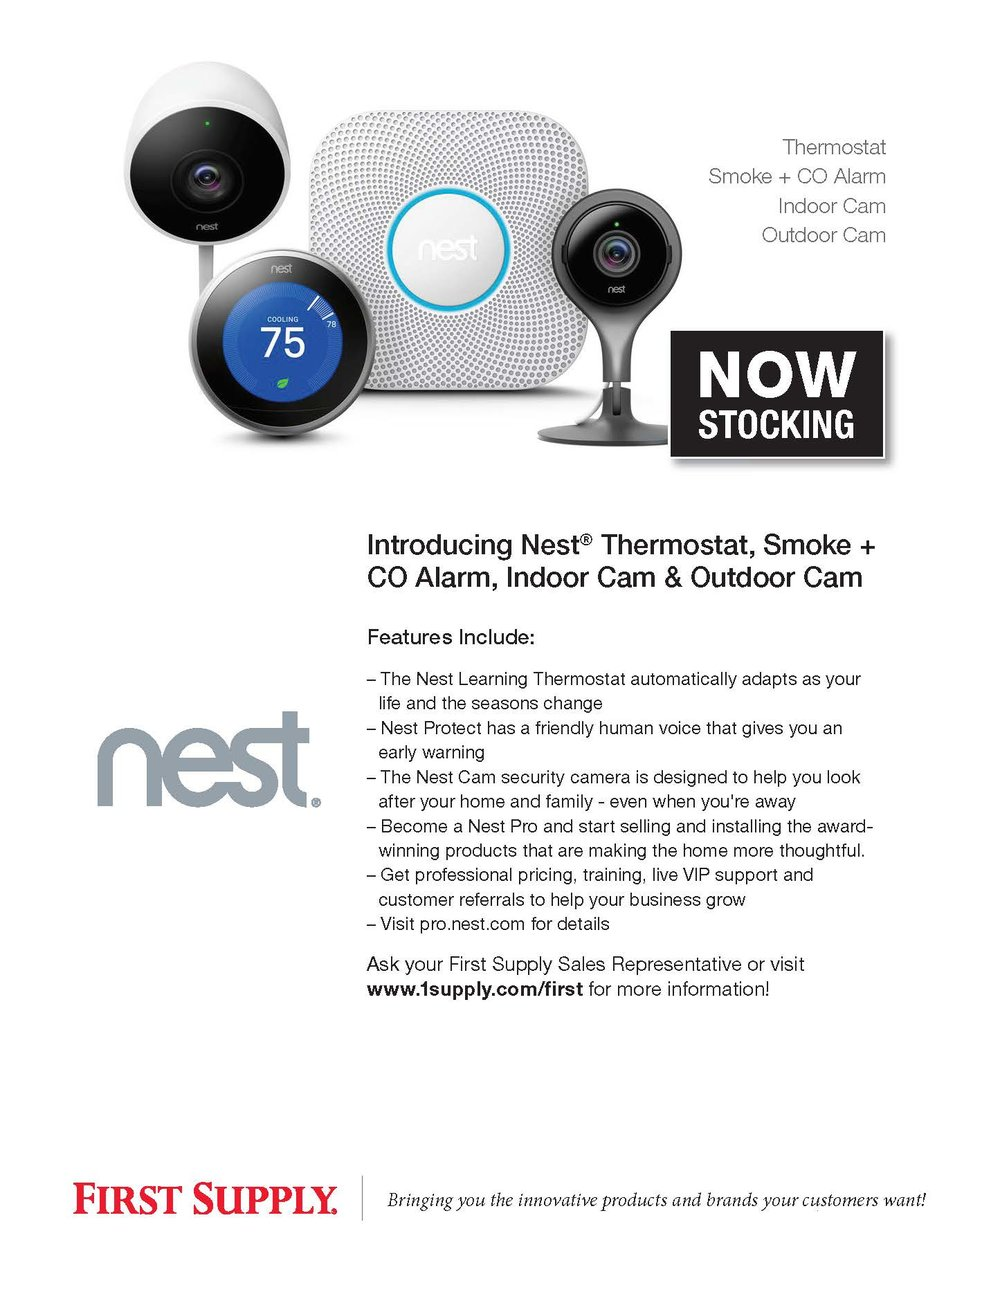 Nest - Thermostat, CO Alarm, Indoor and Outdoor Camera